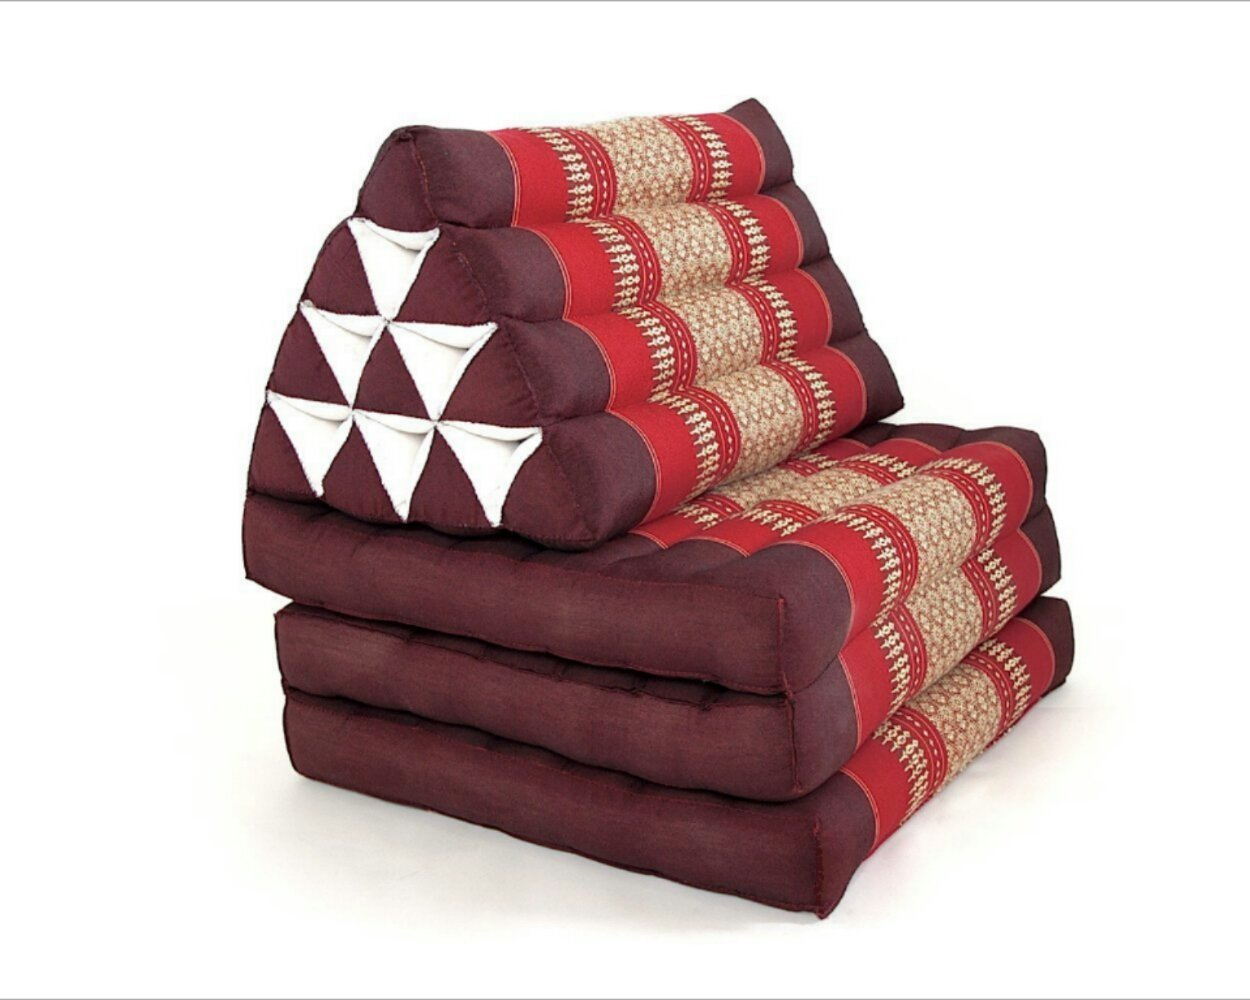 Thai Handmade Foldout Triangle Thai Cushion, 67x21x3 inches, Kapok Fabric,Red, Premium Double Stitched